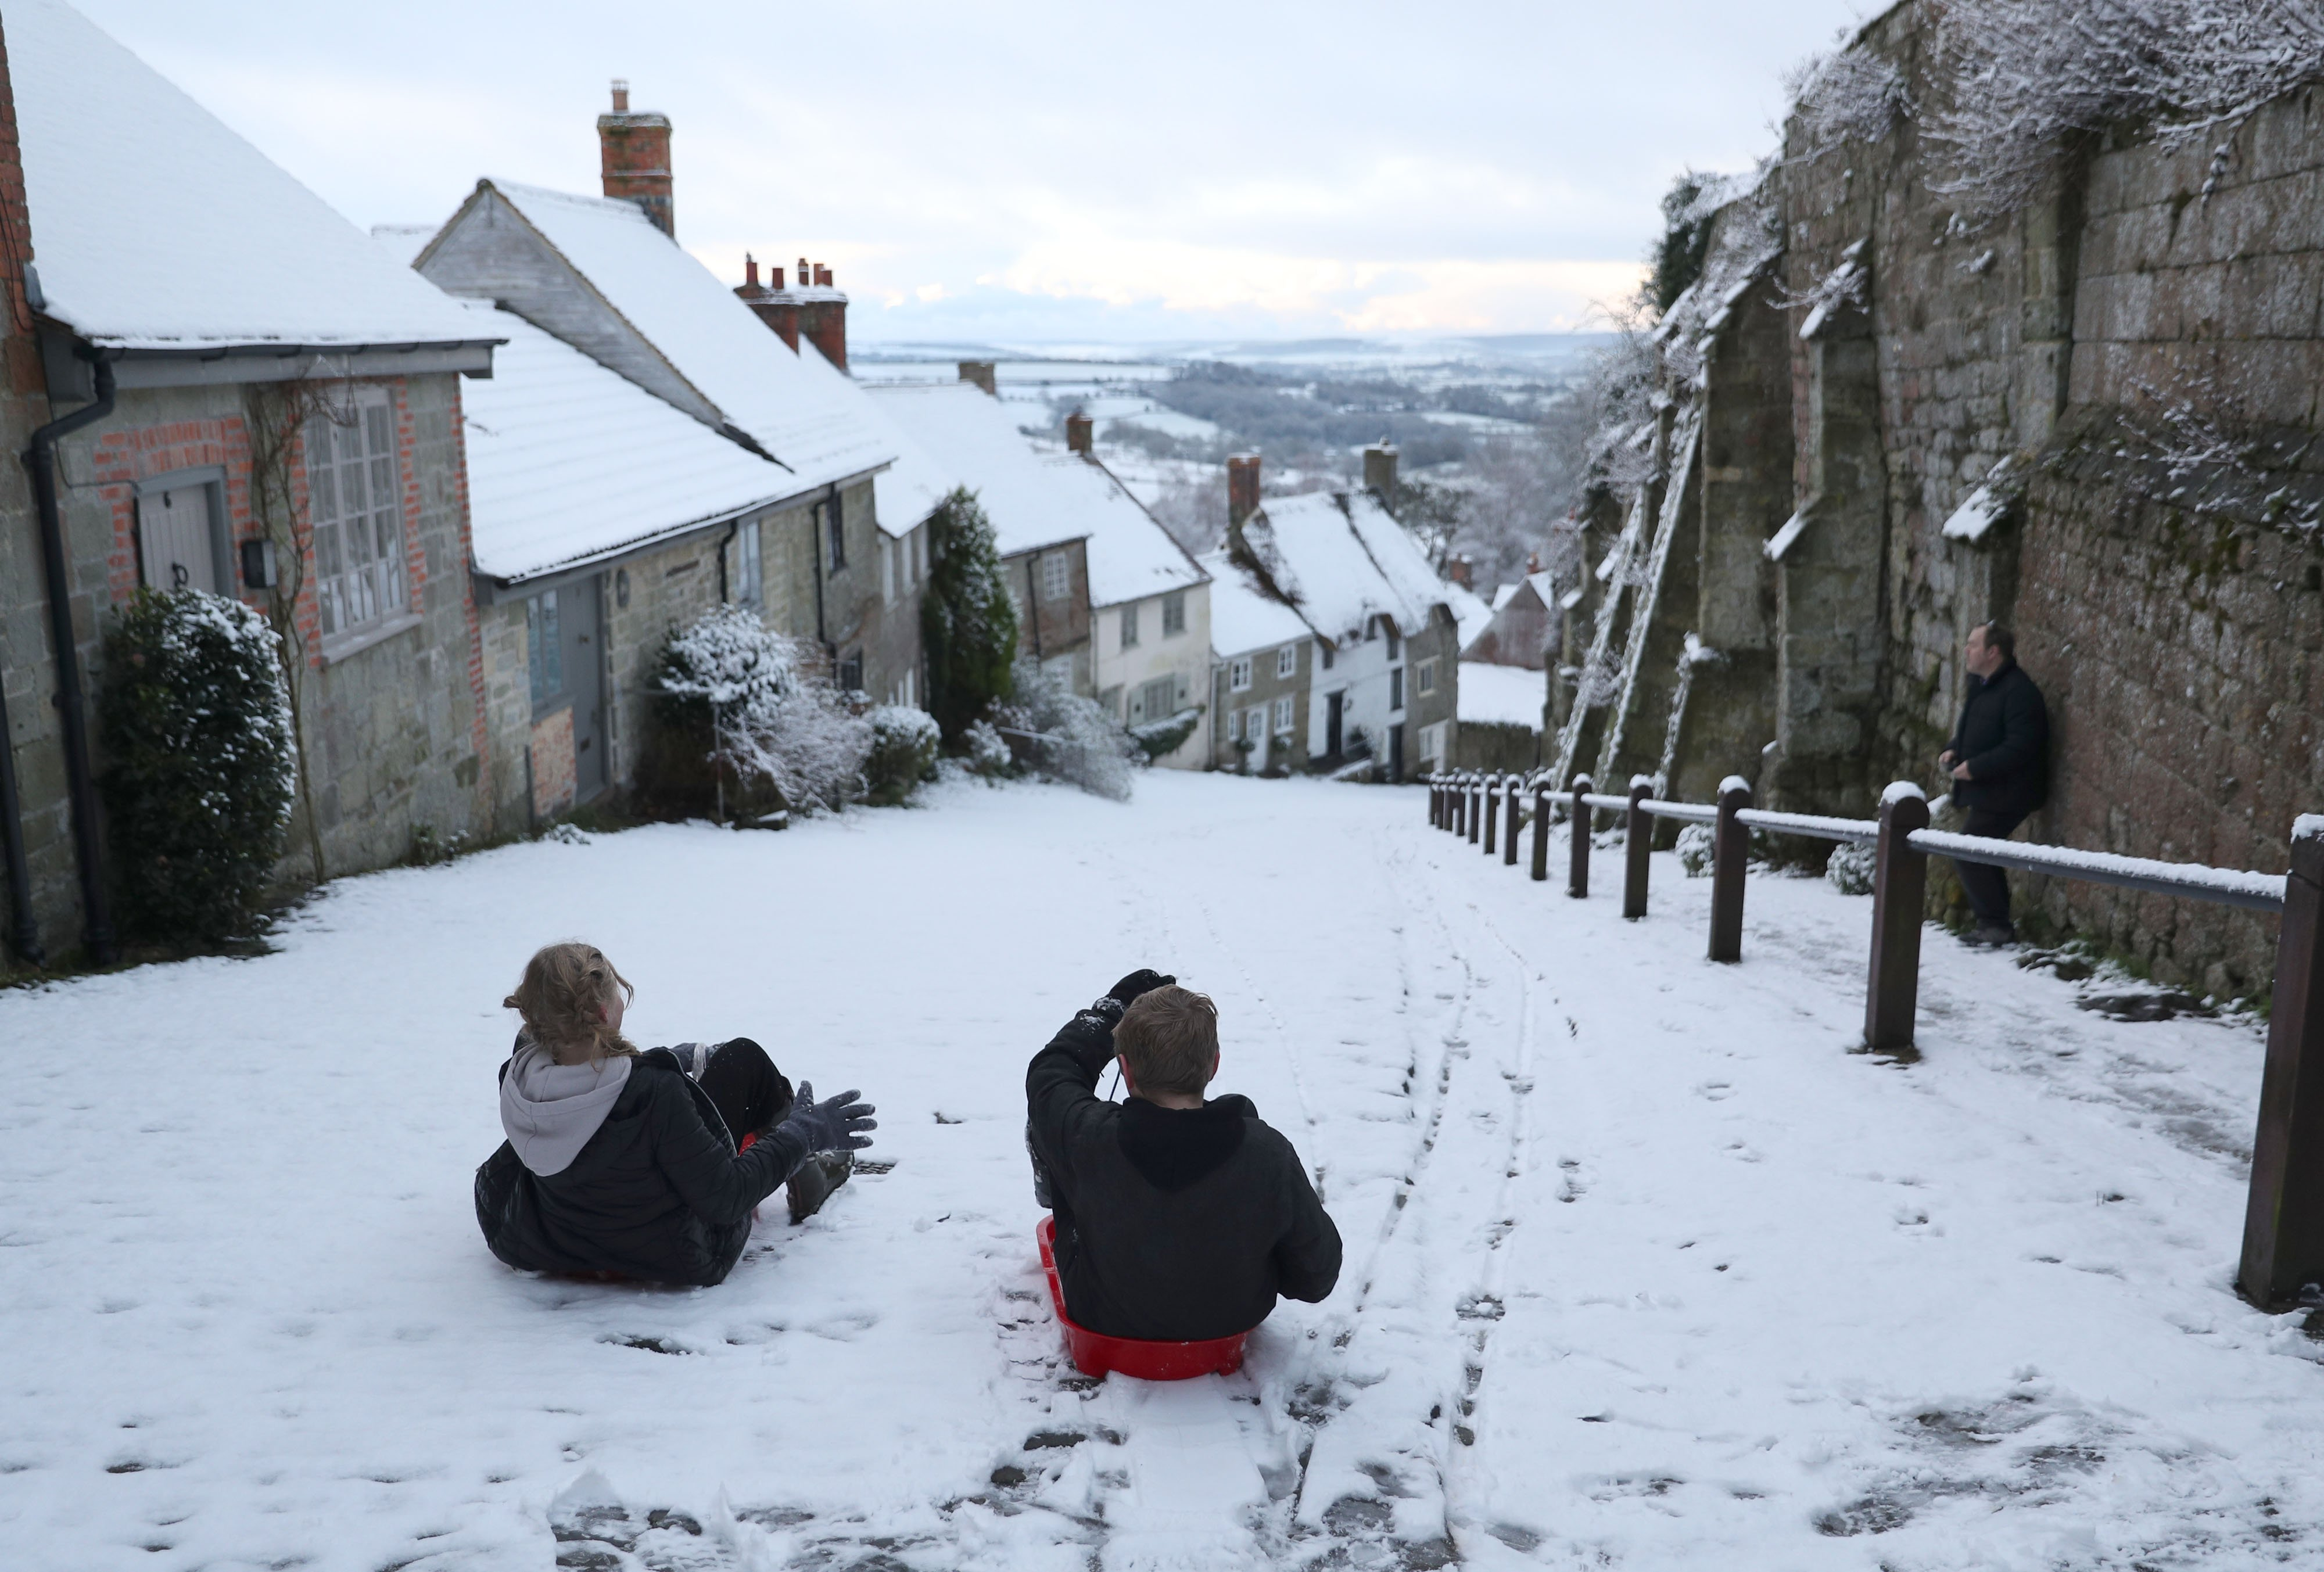 In Pictures: Fun in the snow as temperatures tumble